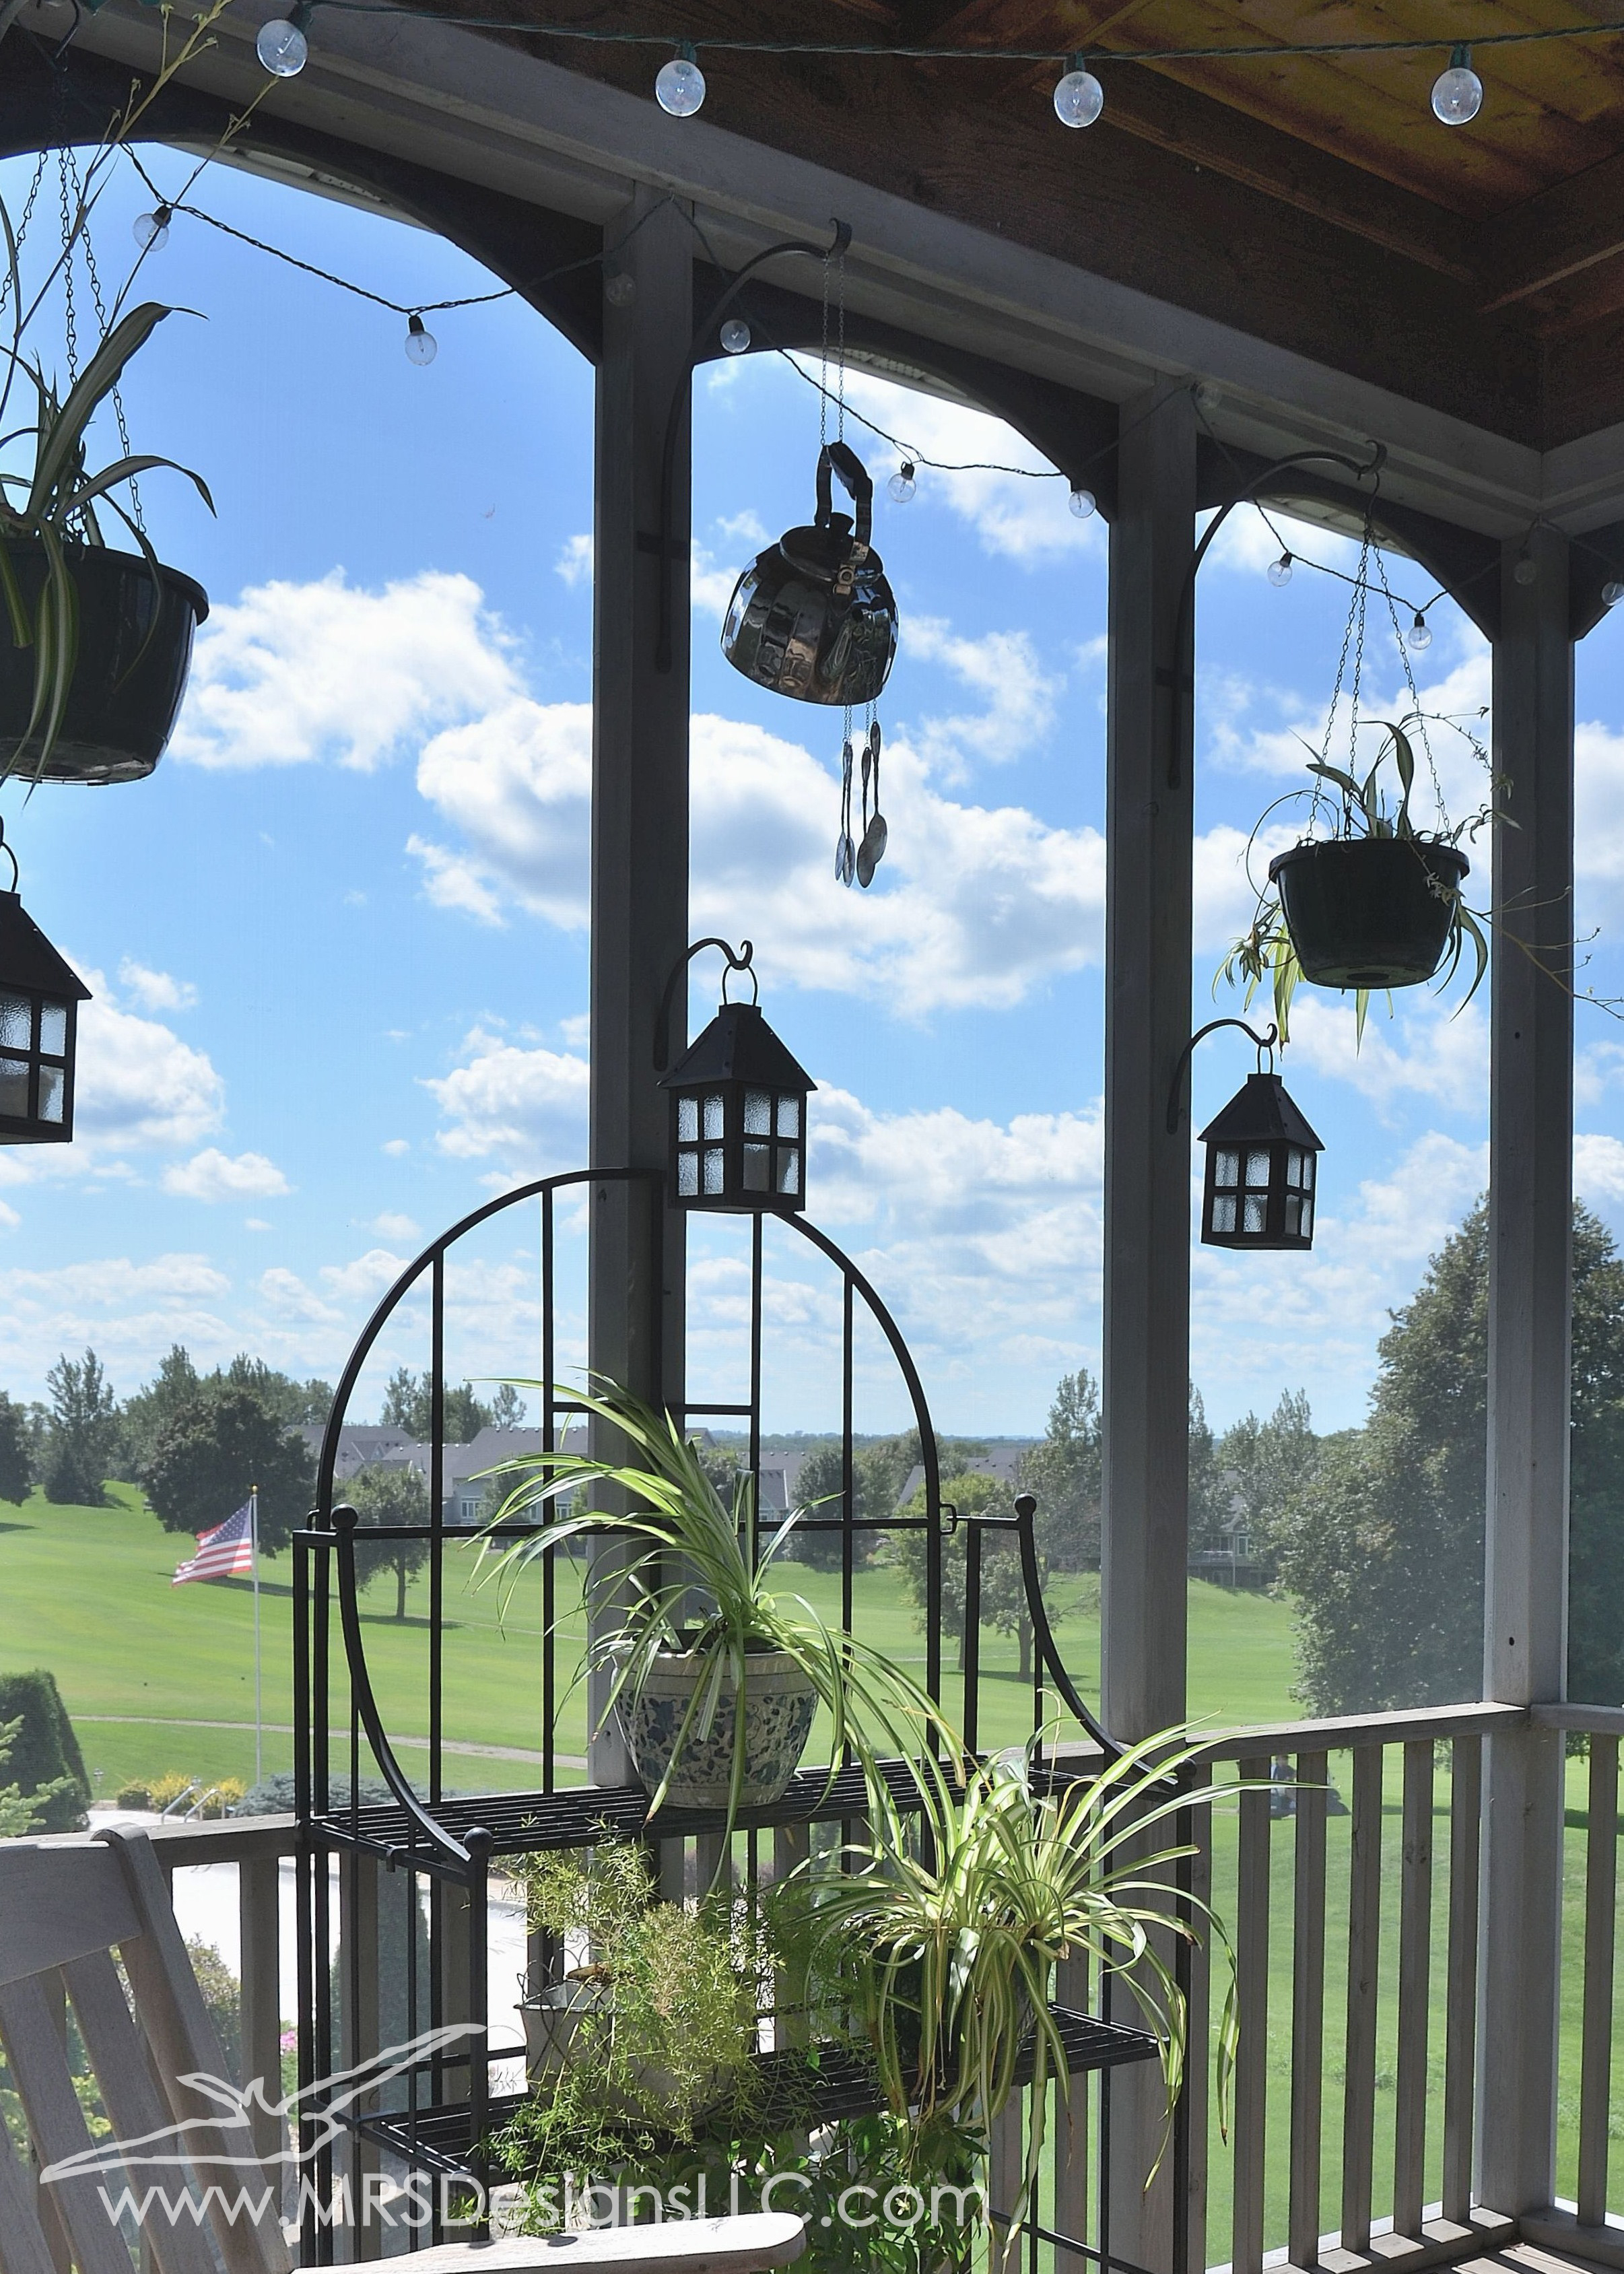 MRS Designs - DYI Wind Chime